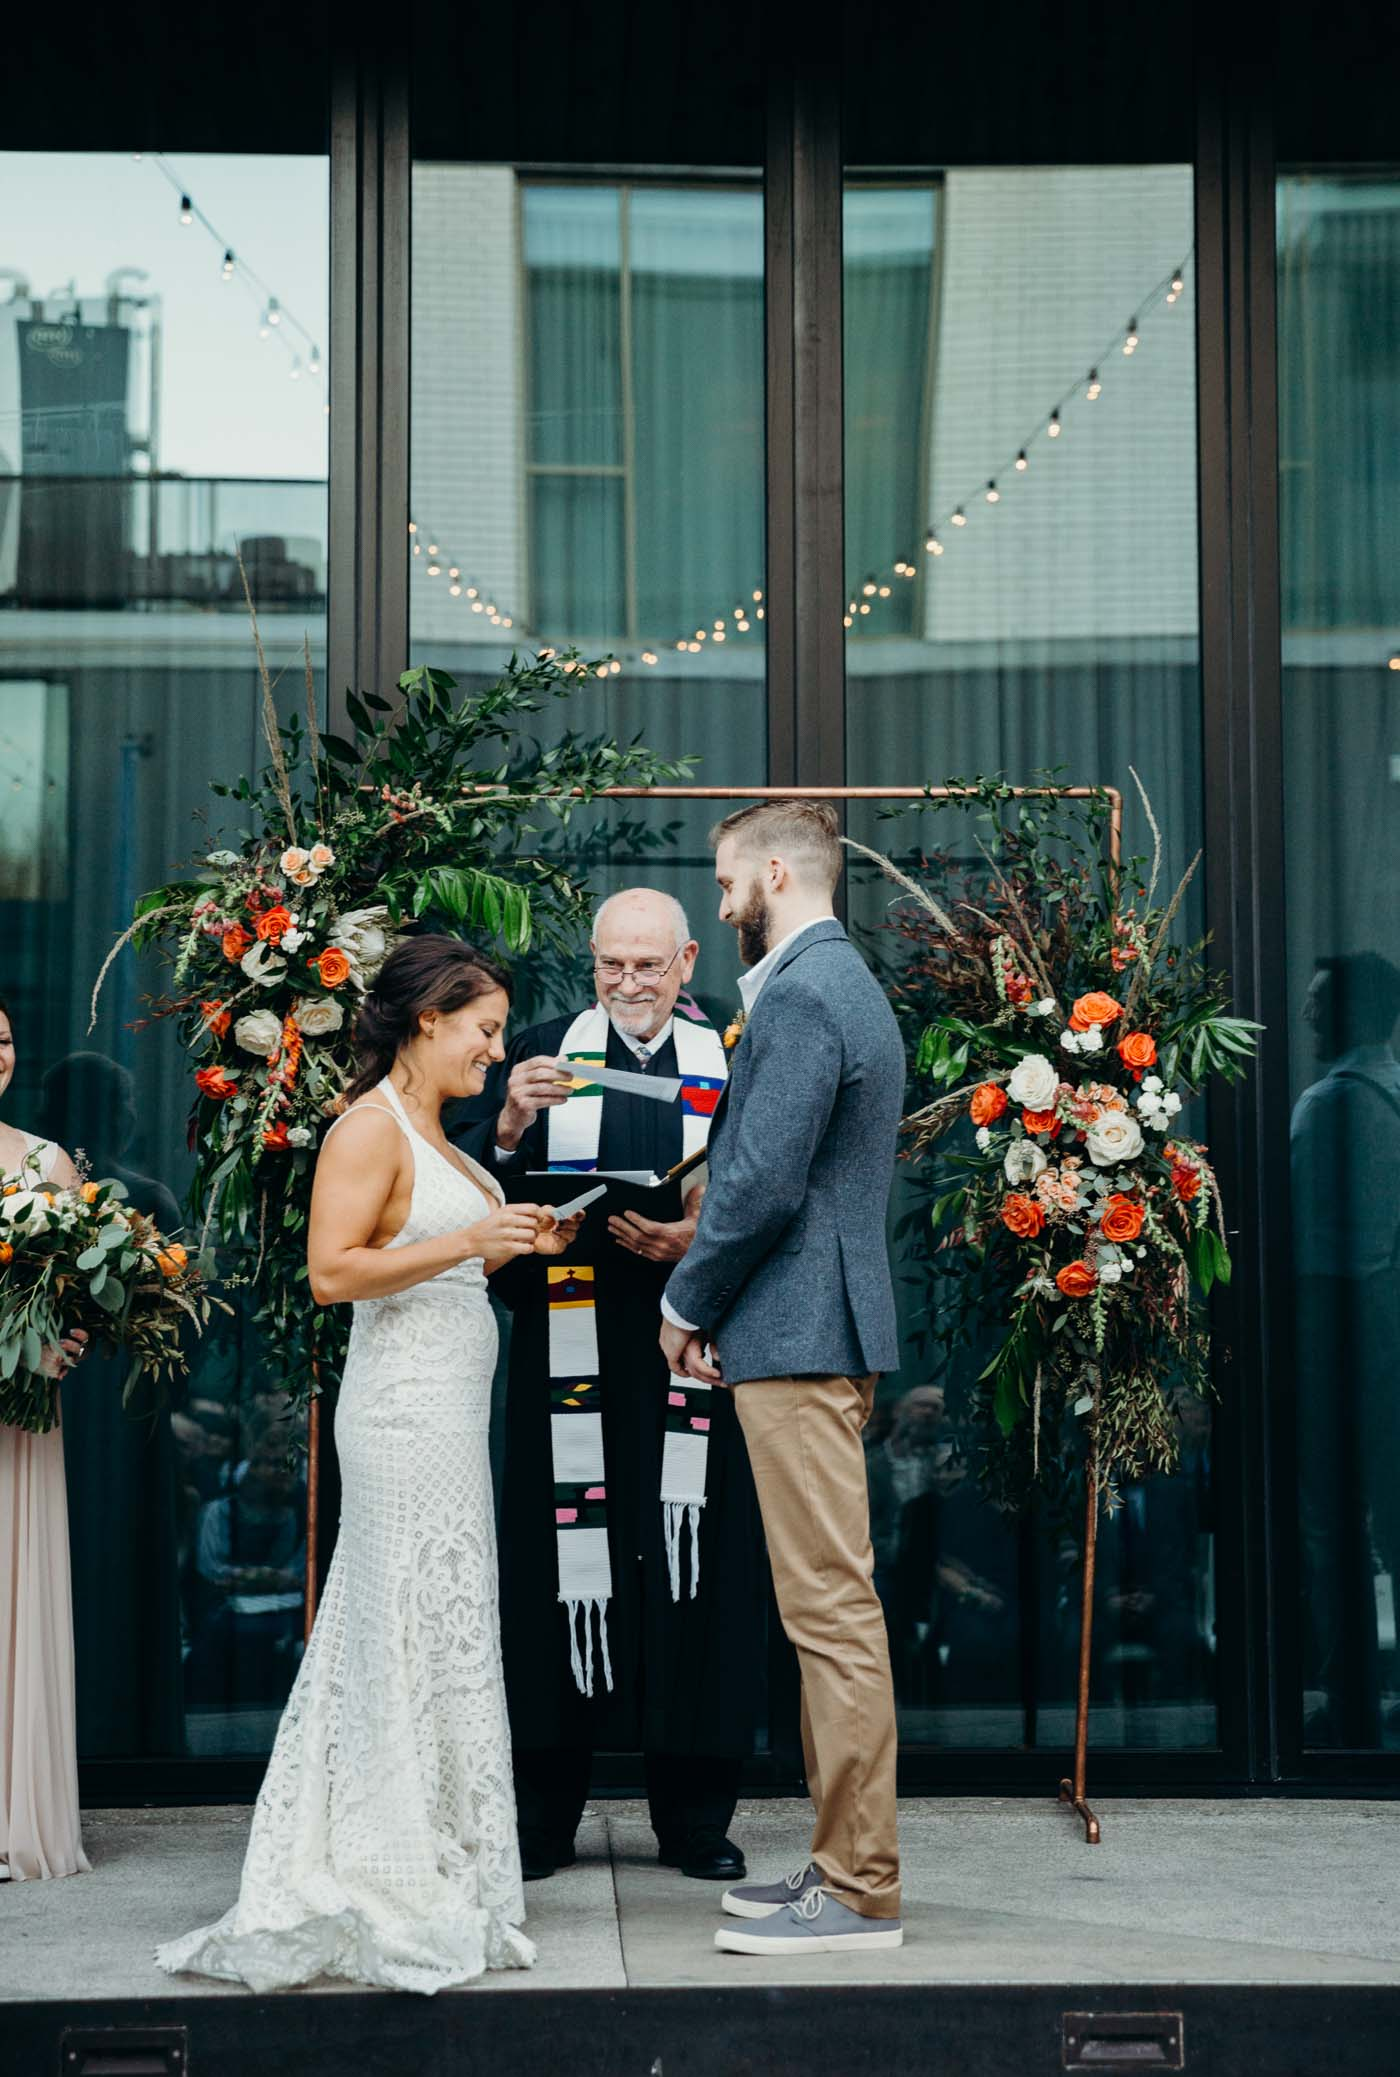 Bride reading her vows to her fiancé at the alter on their wedding day. Behind them is an arch covered with flowers. It is a boho wedding.